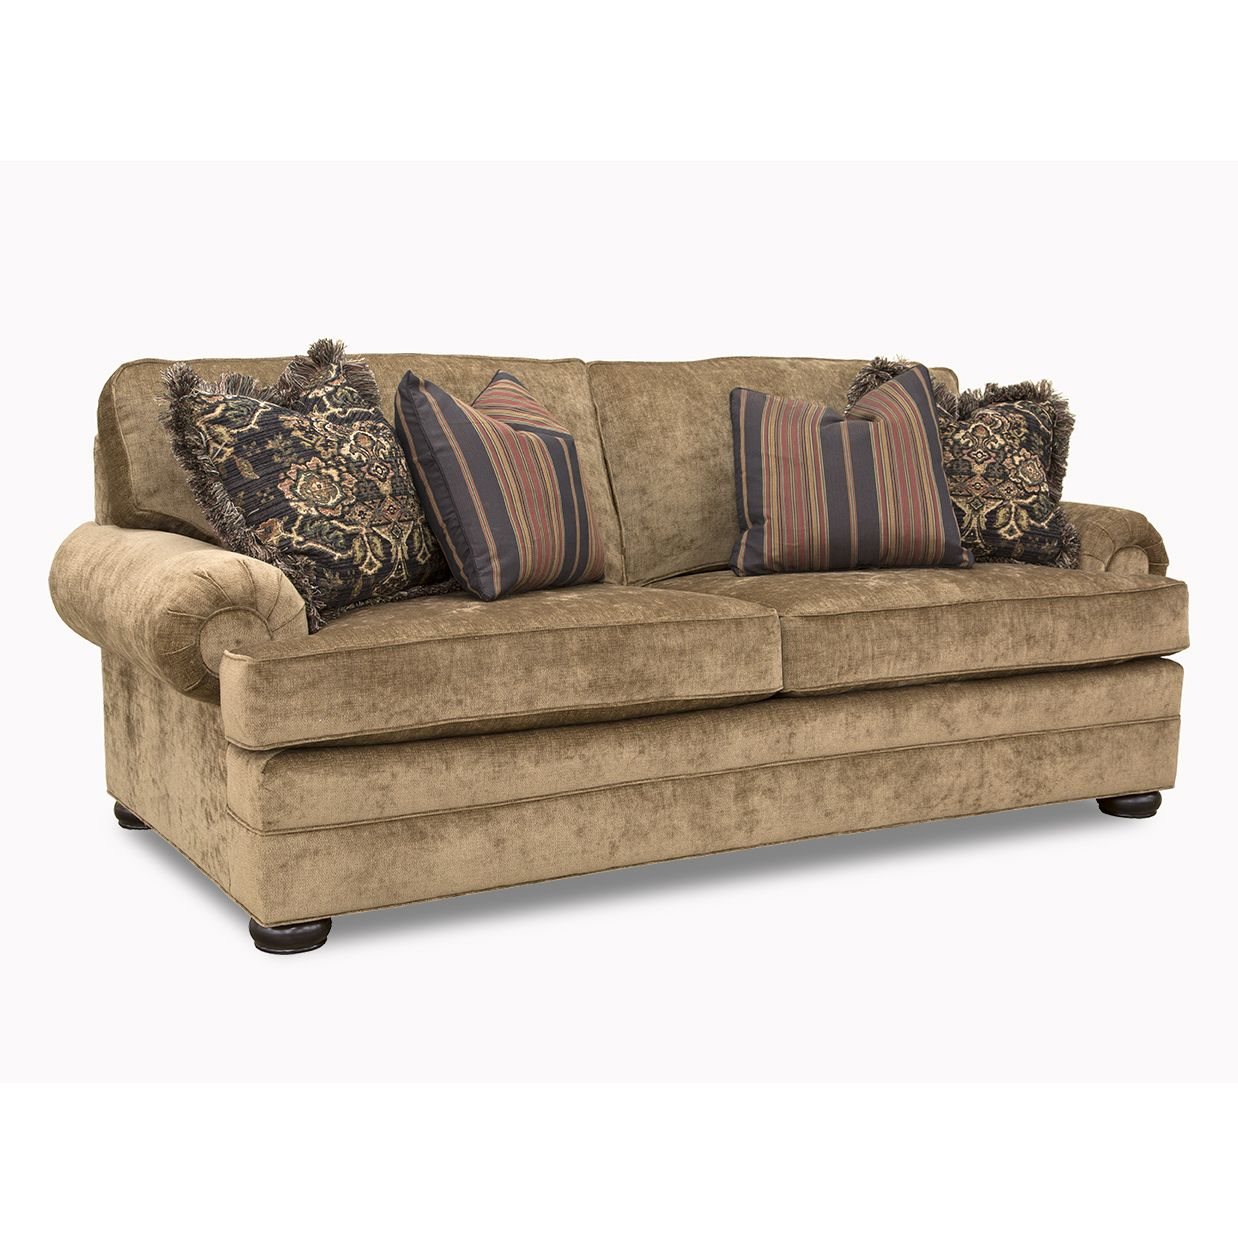 Cheap Couch Sets For Sale: Huntington House #Sofa 2061-70